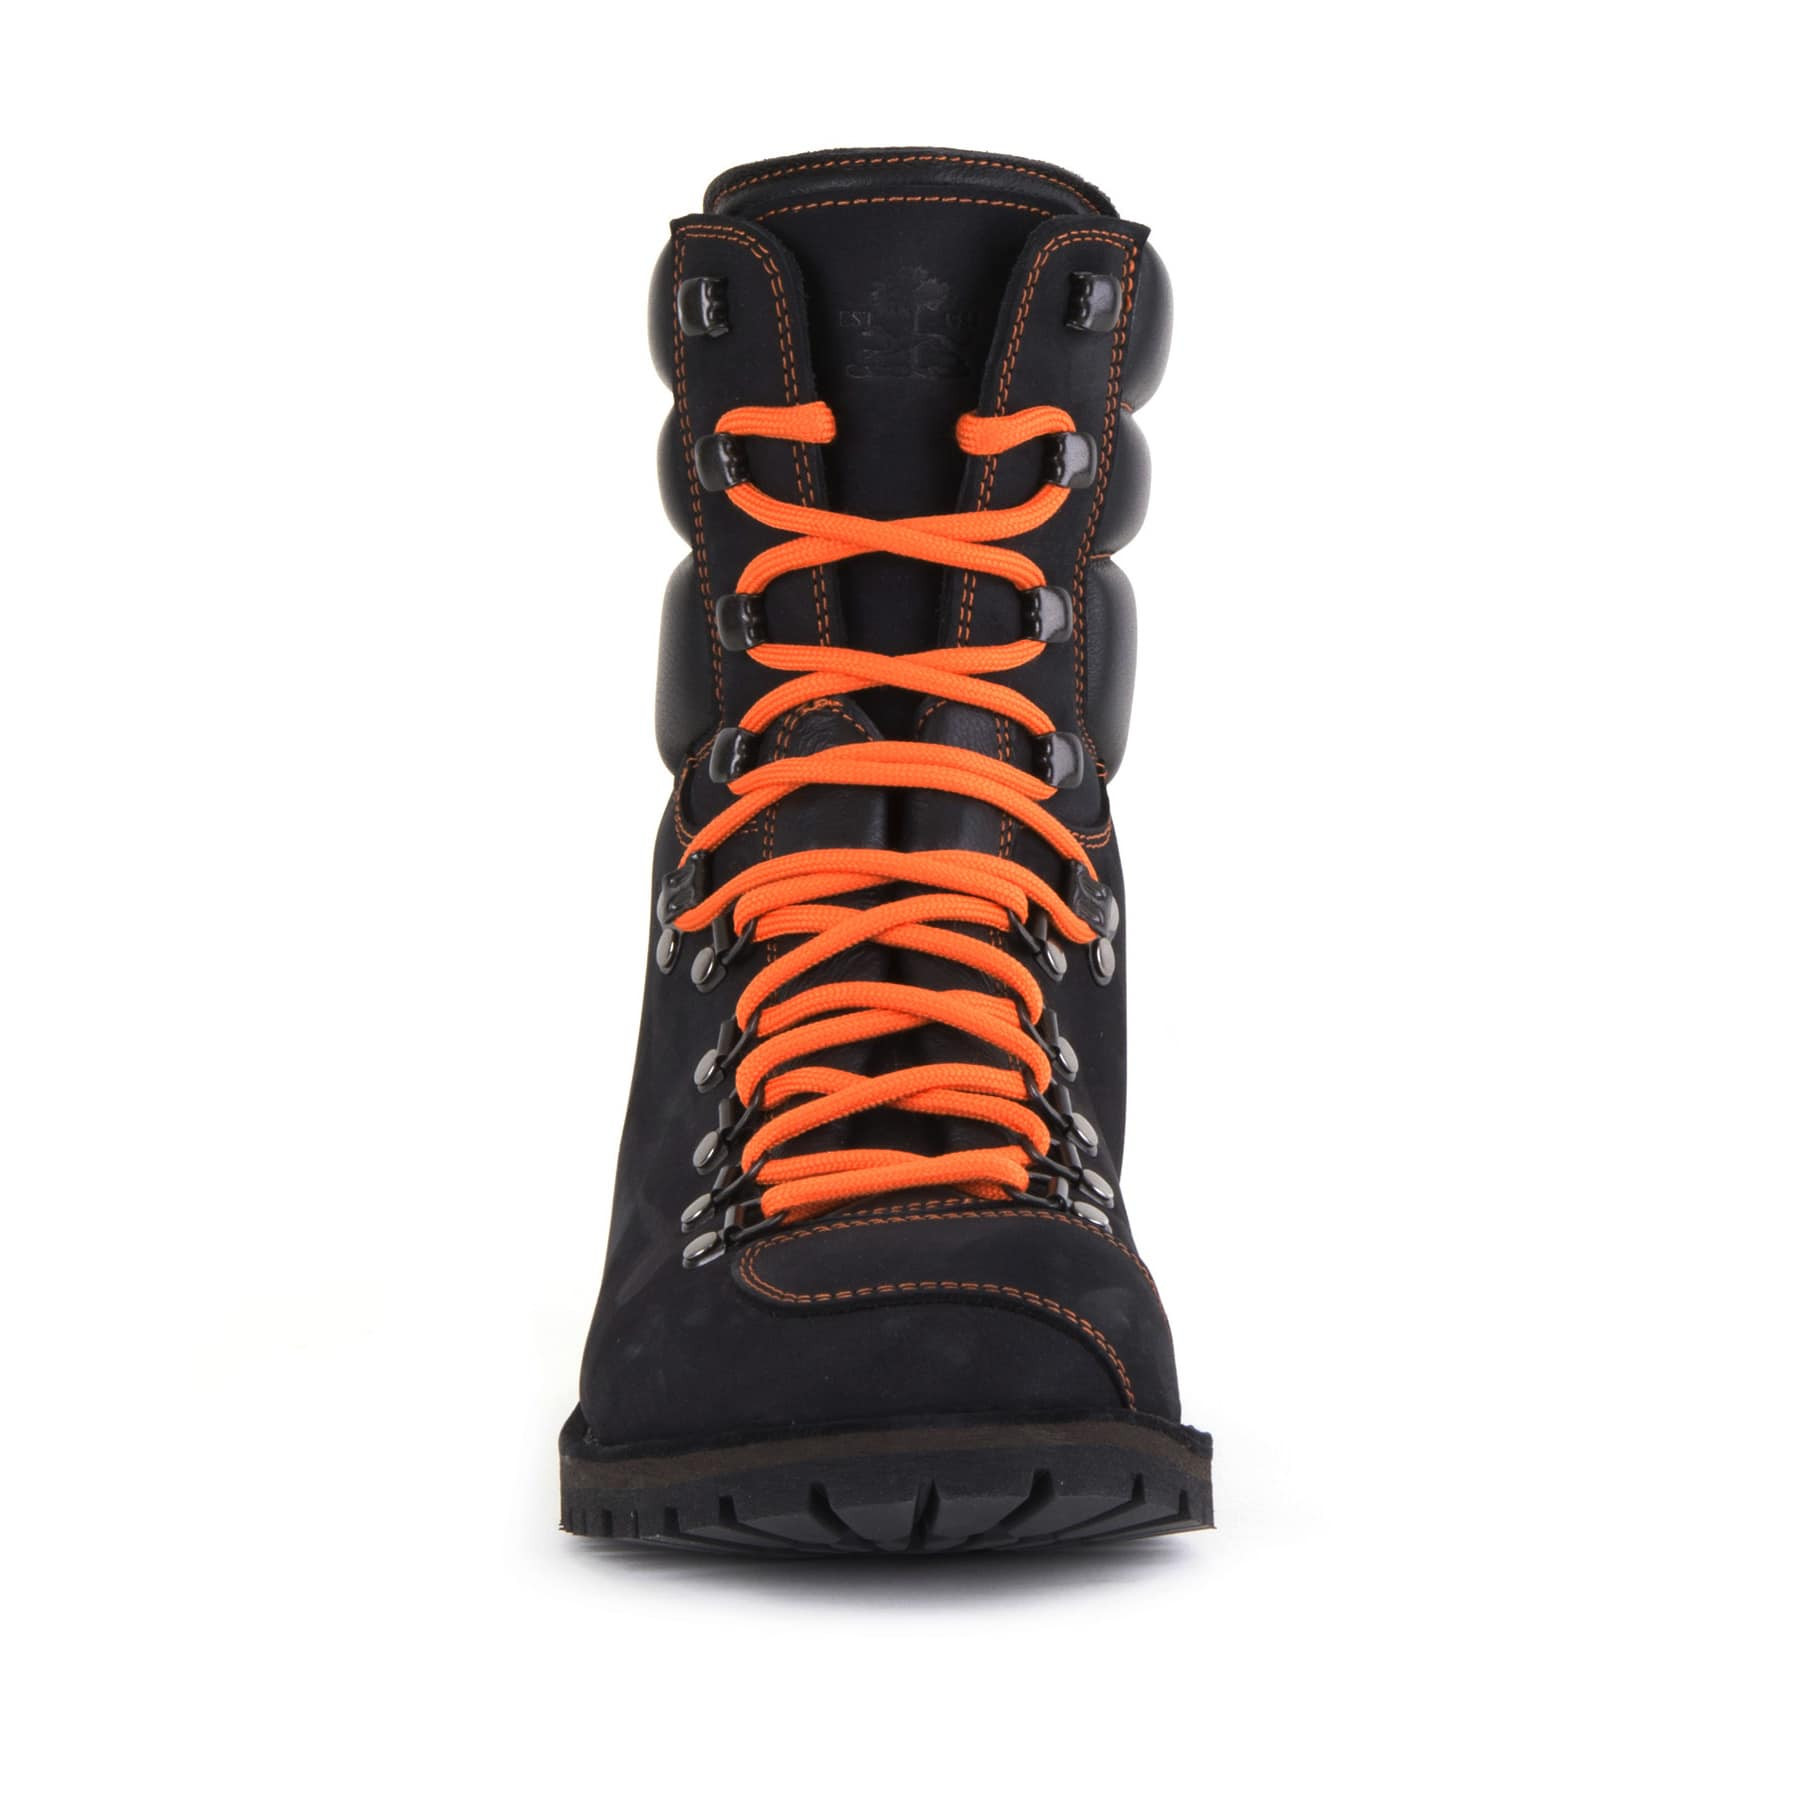 Biker Boot AdventureSE Denver Black, schwarzer Herren Stiefel, orange Nähte